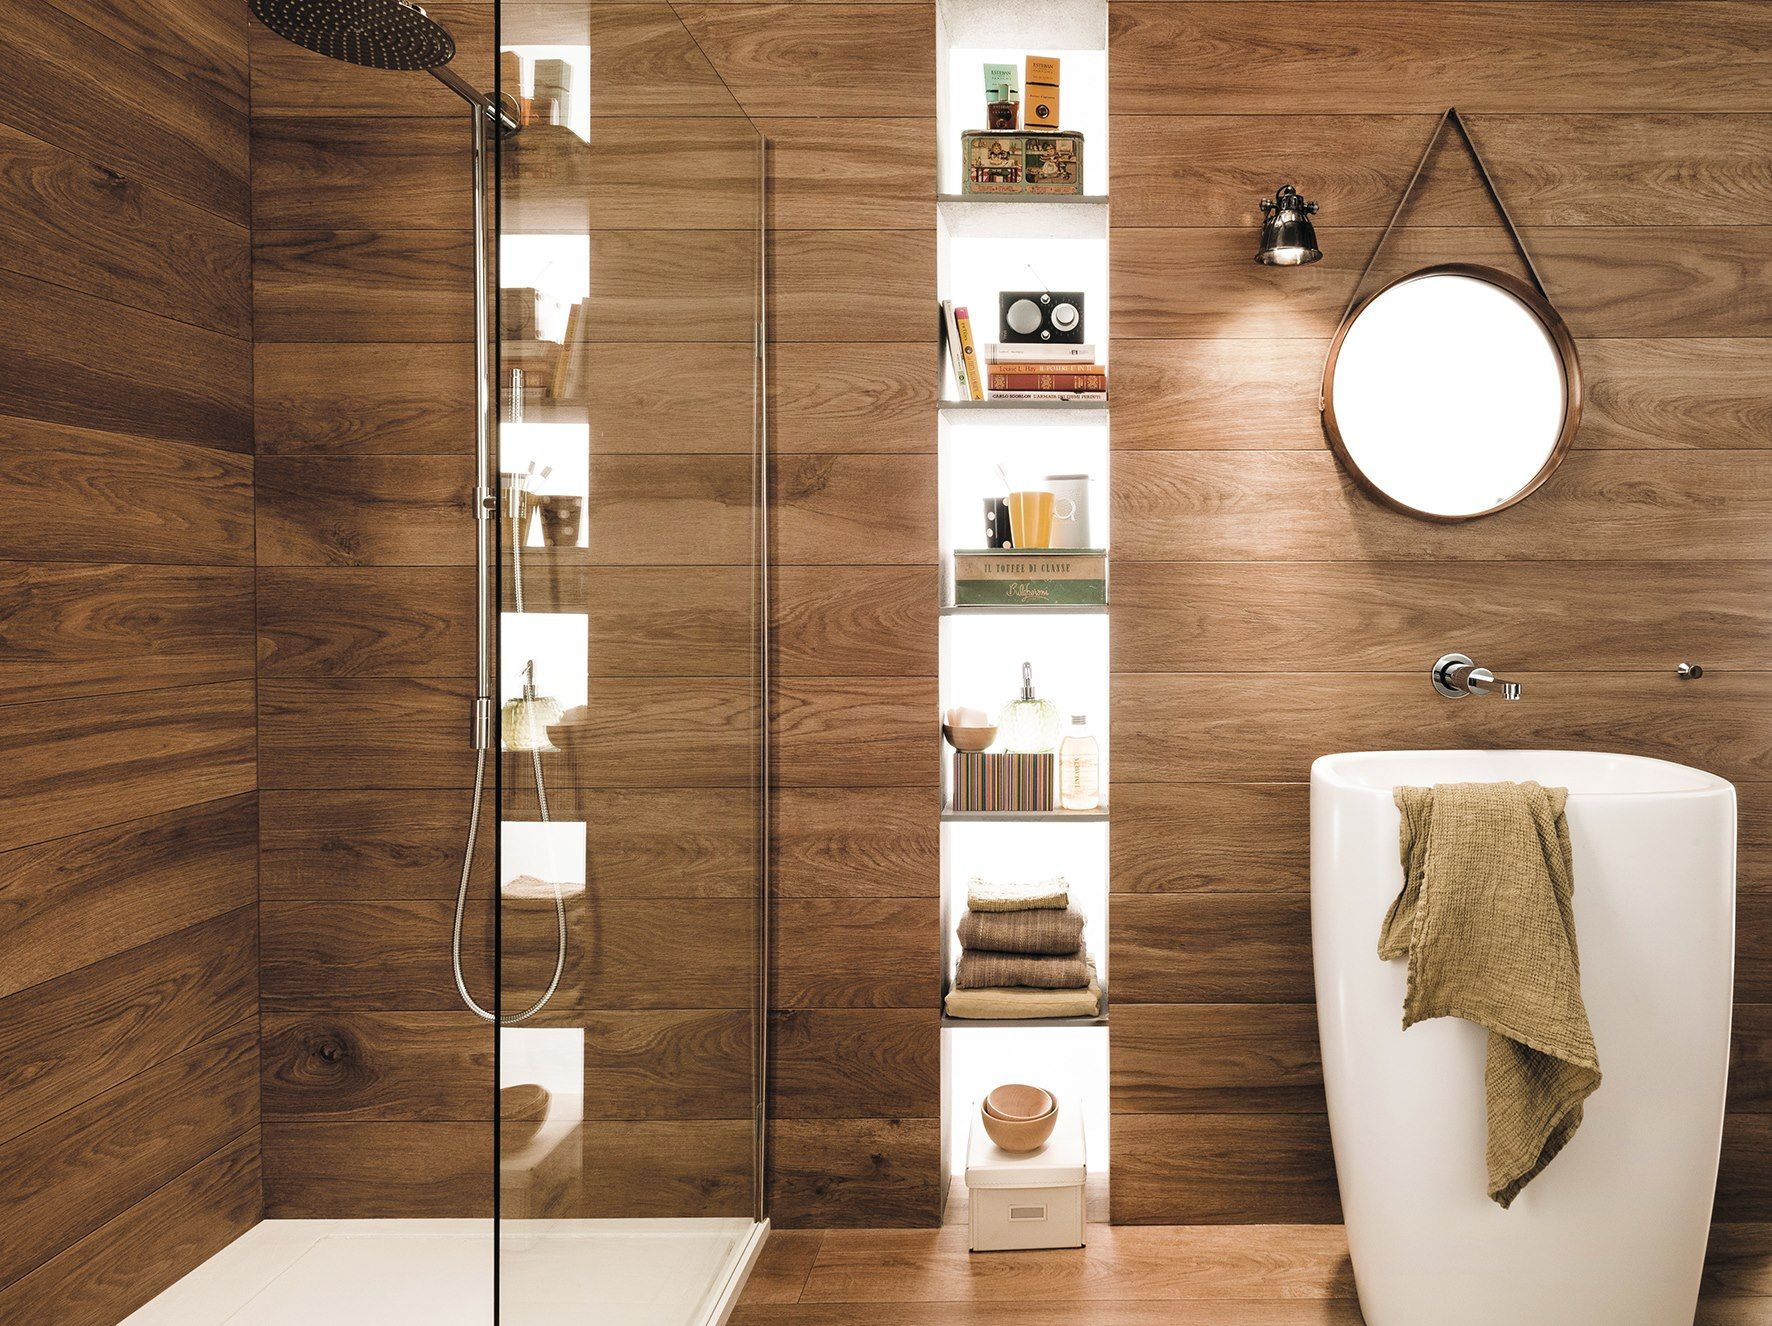 Mirage signature havana timber look tile available at ceramo